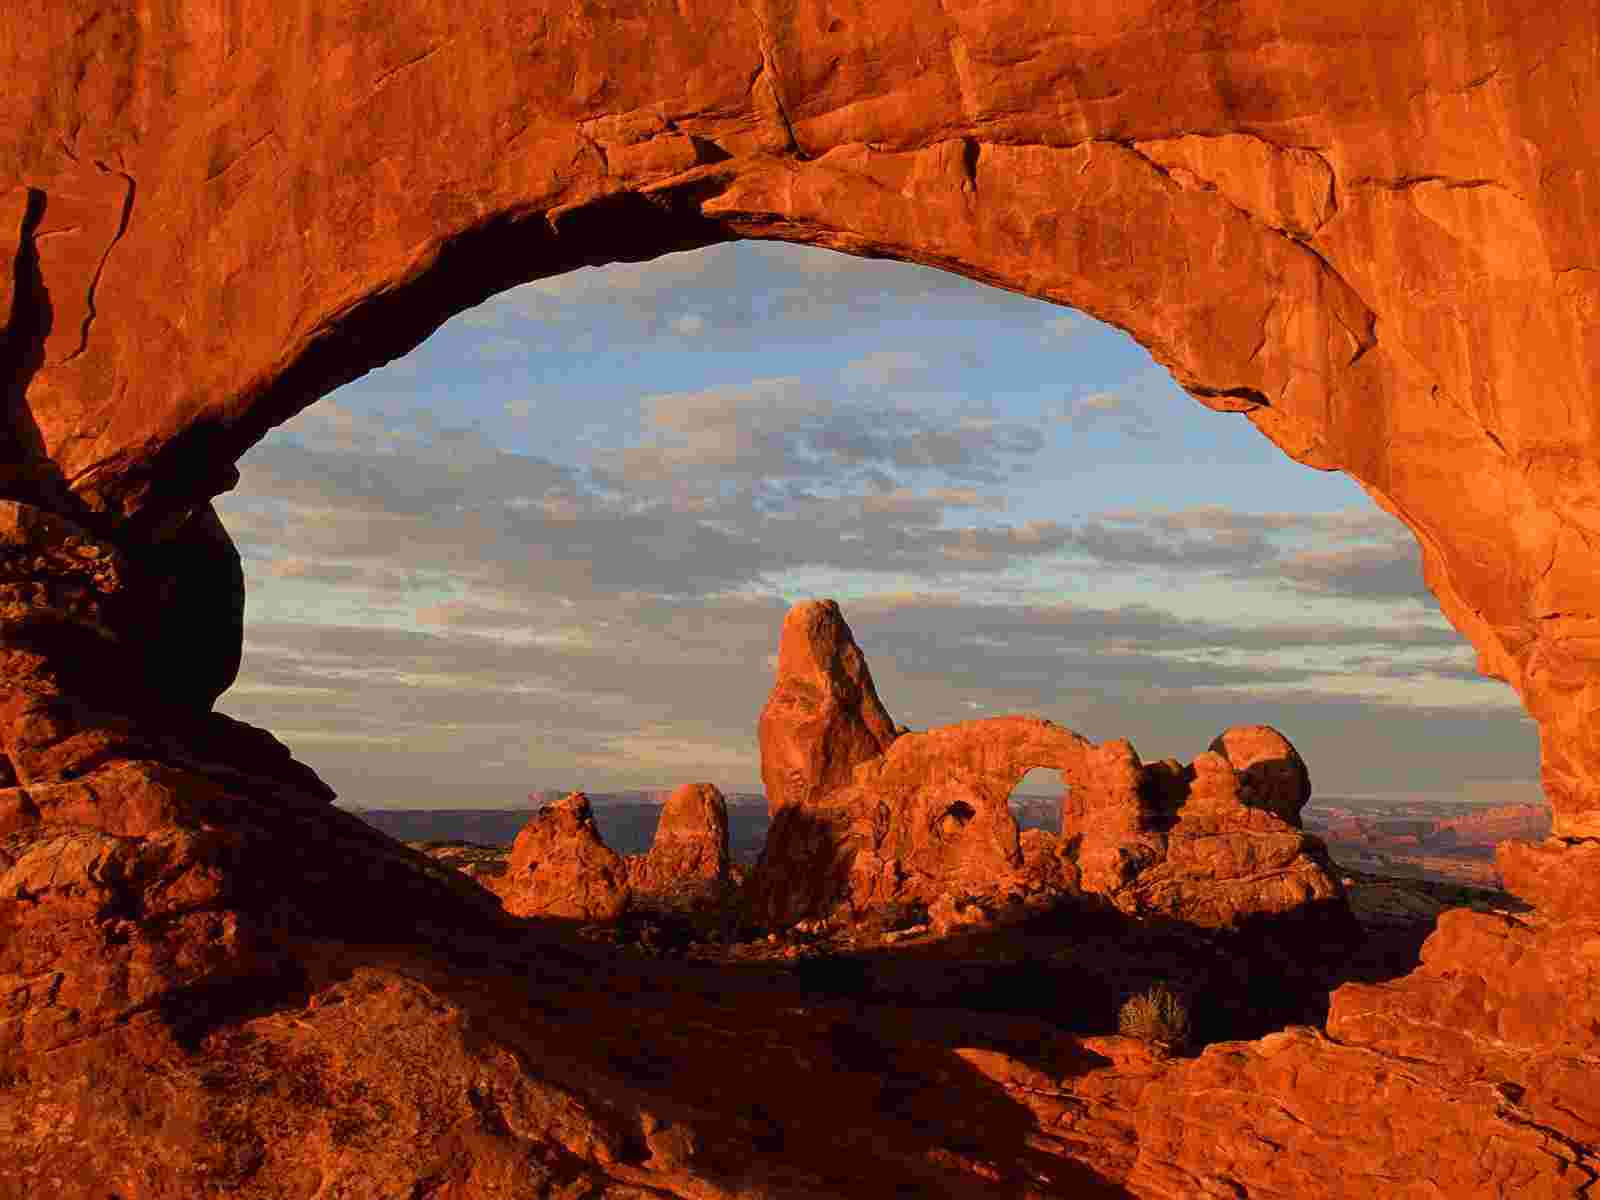 arches in utah wallpaper arches national park utah mountains wallpaper 1600x1200